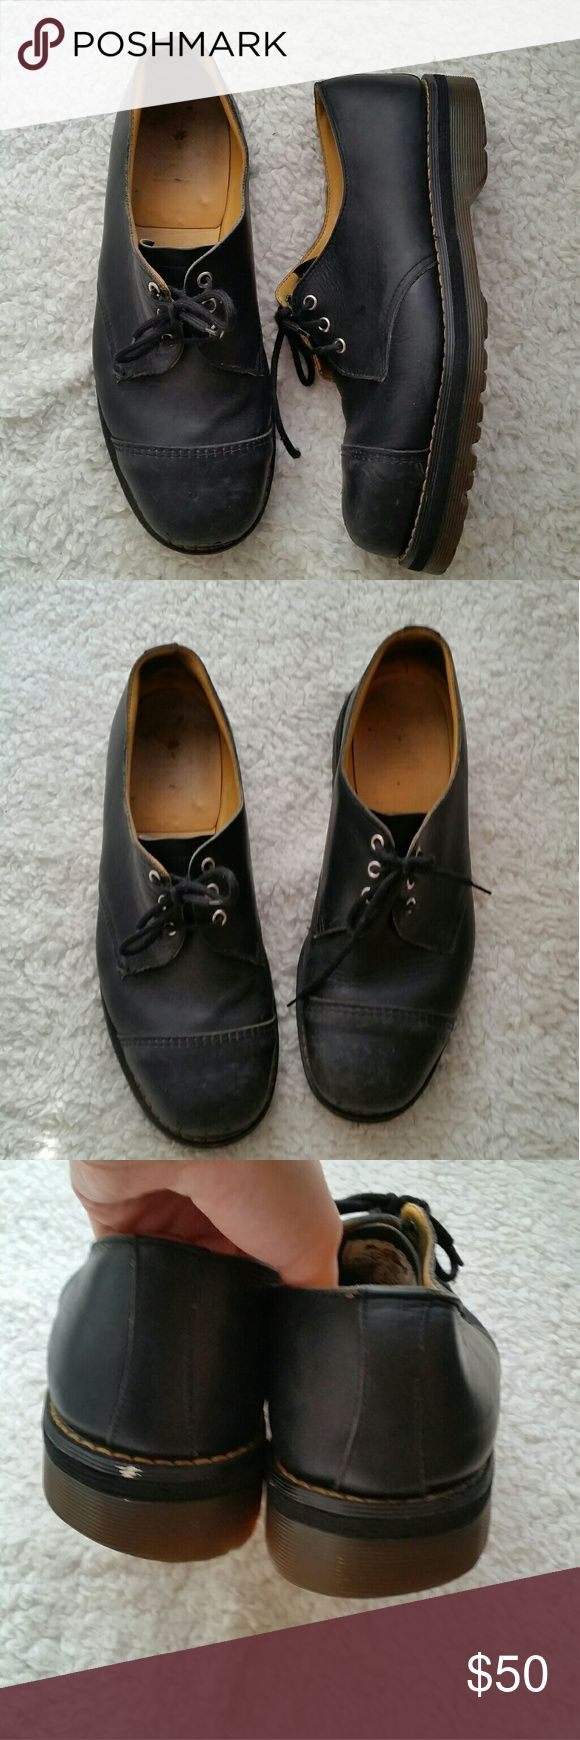 Dr.Martens Steel Toe MADE IN ENGLAND Size 11  In Good Condition  (Refer to Pictures) Dr. Martens Shoes